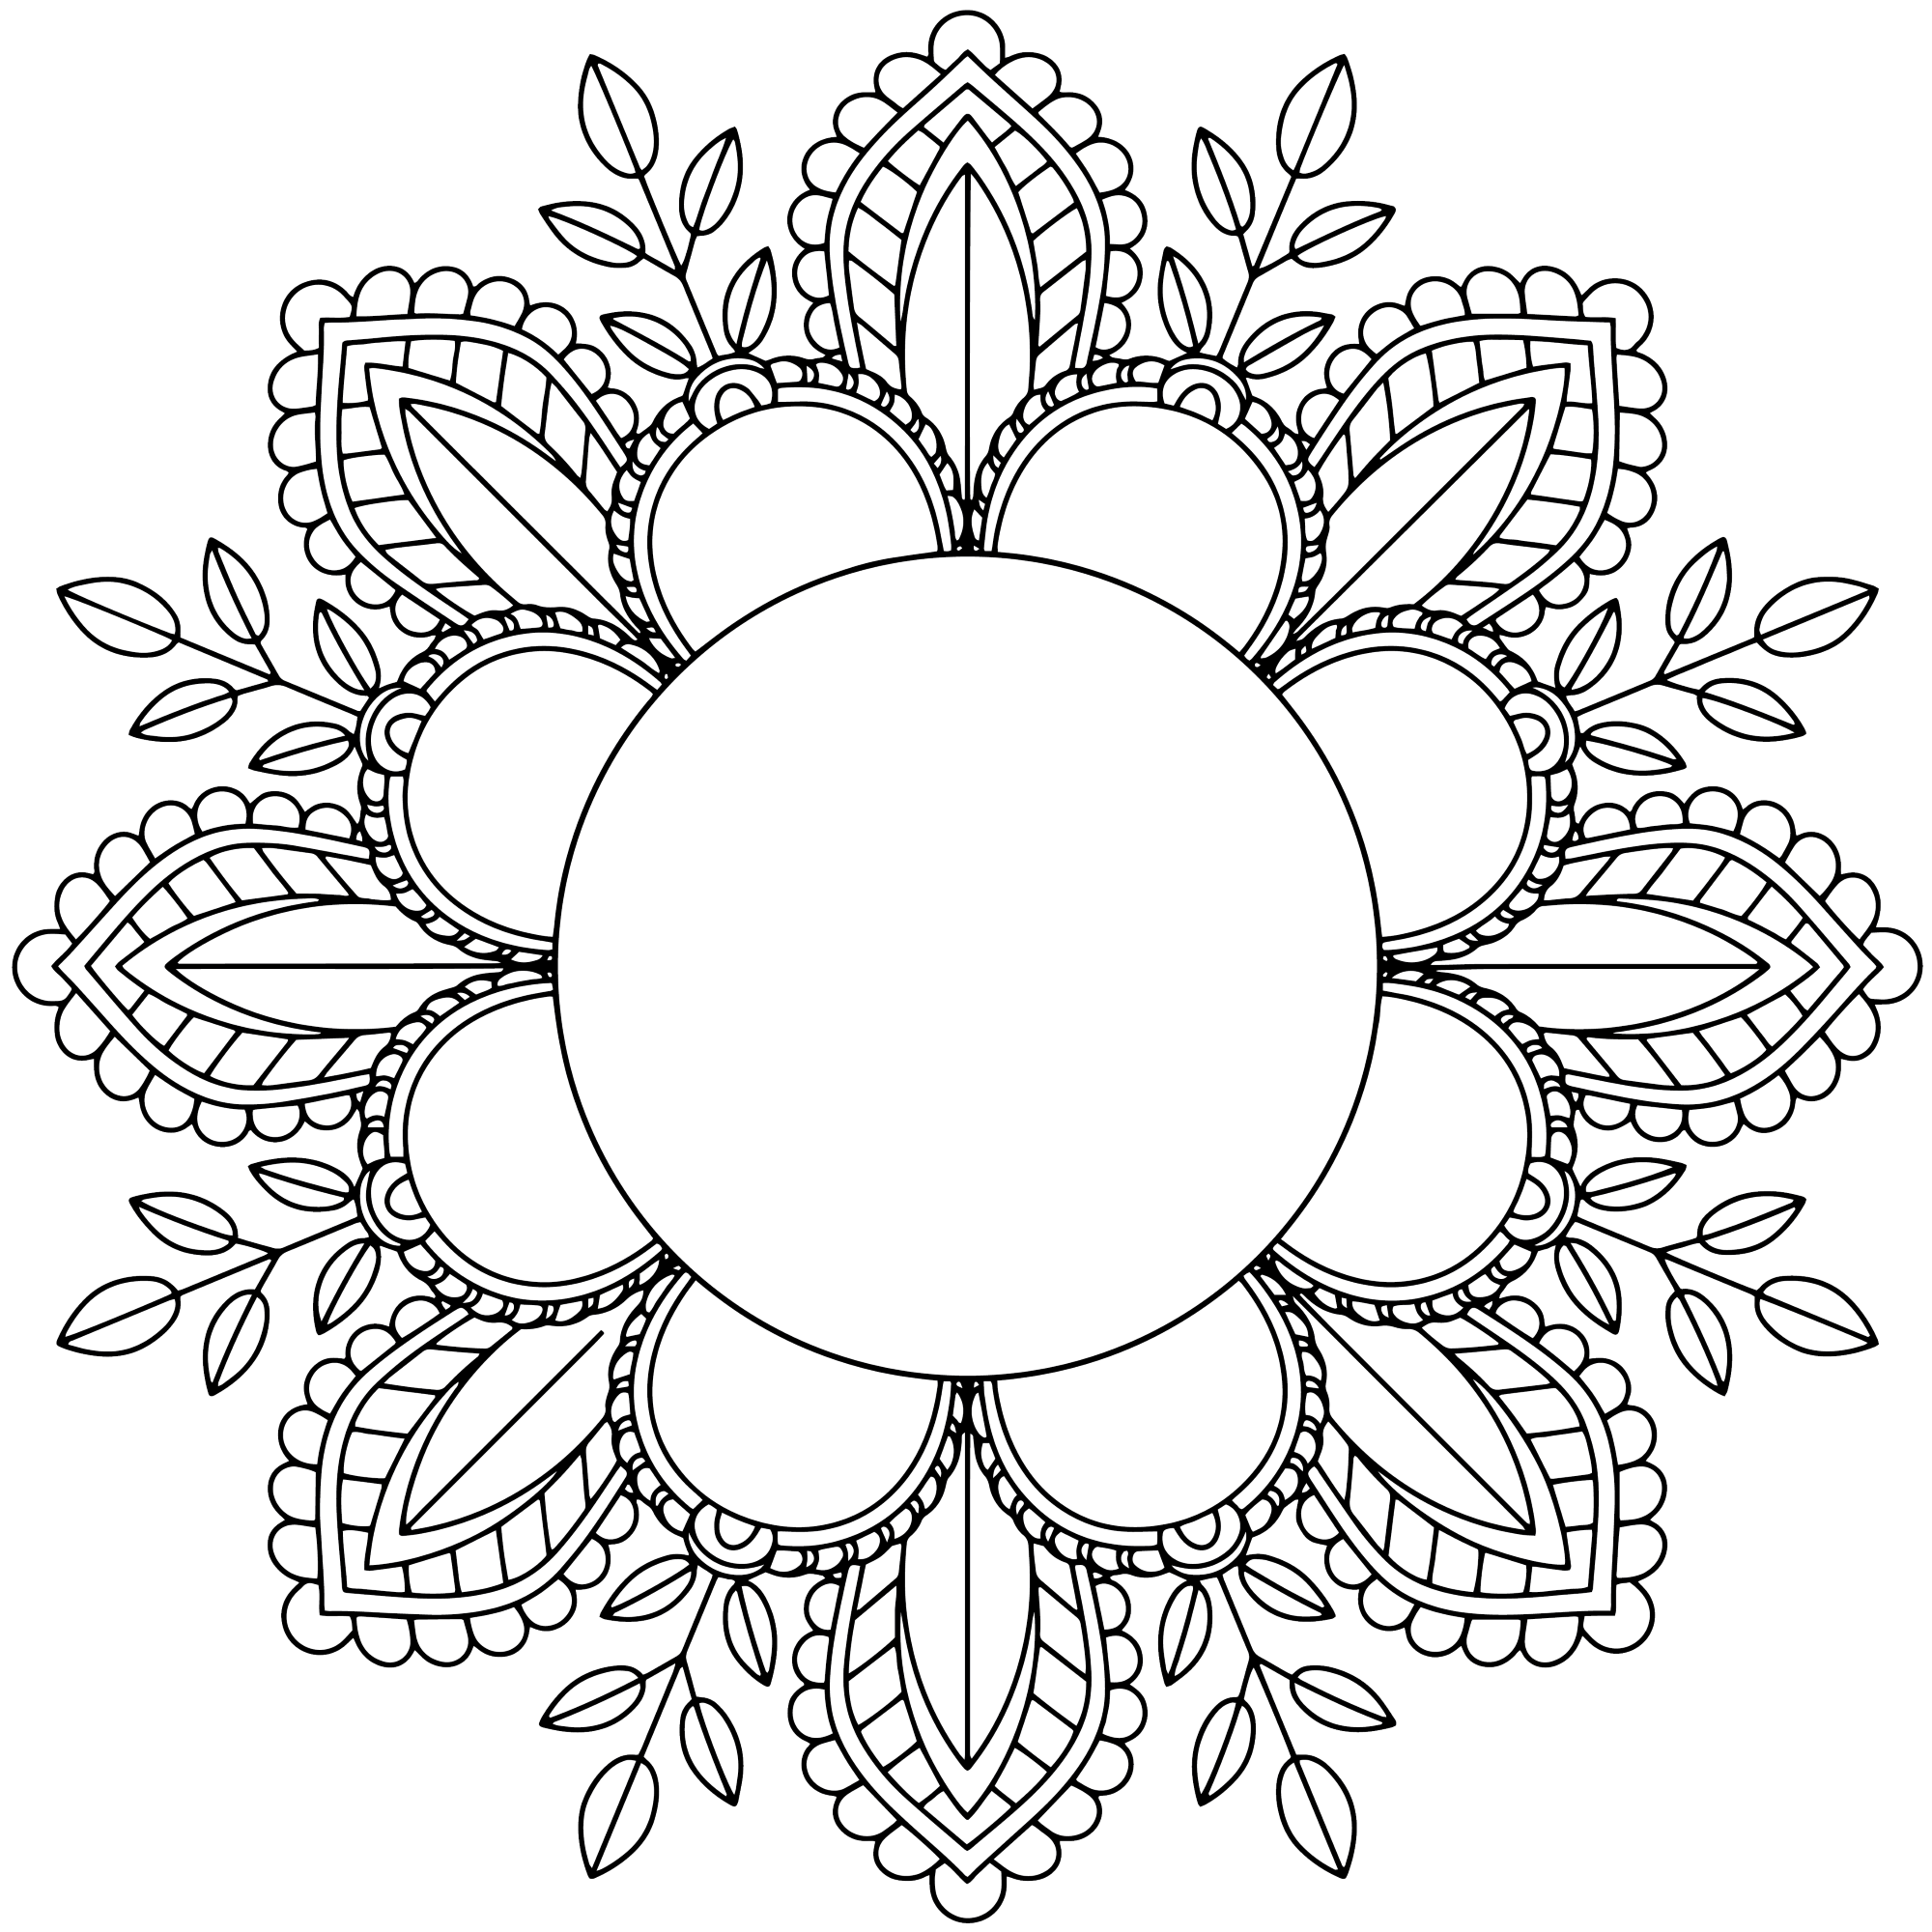 Mandala Colouring Frame